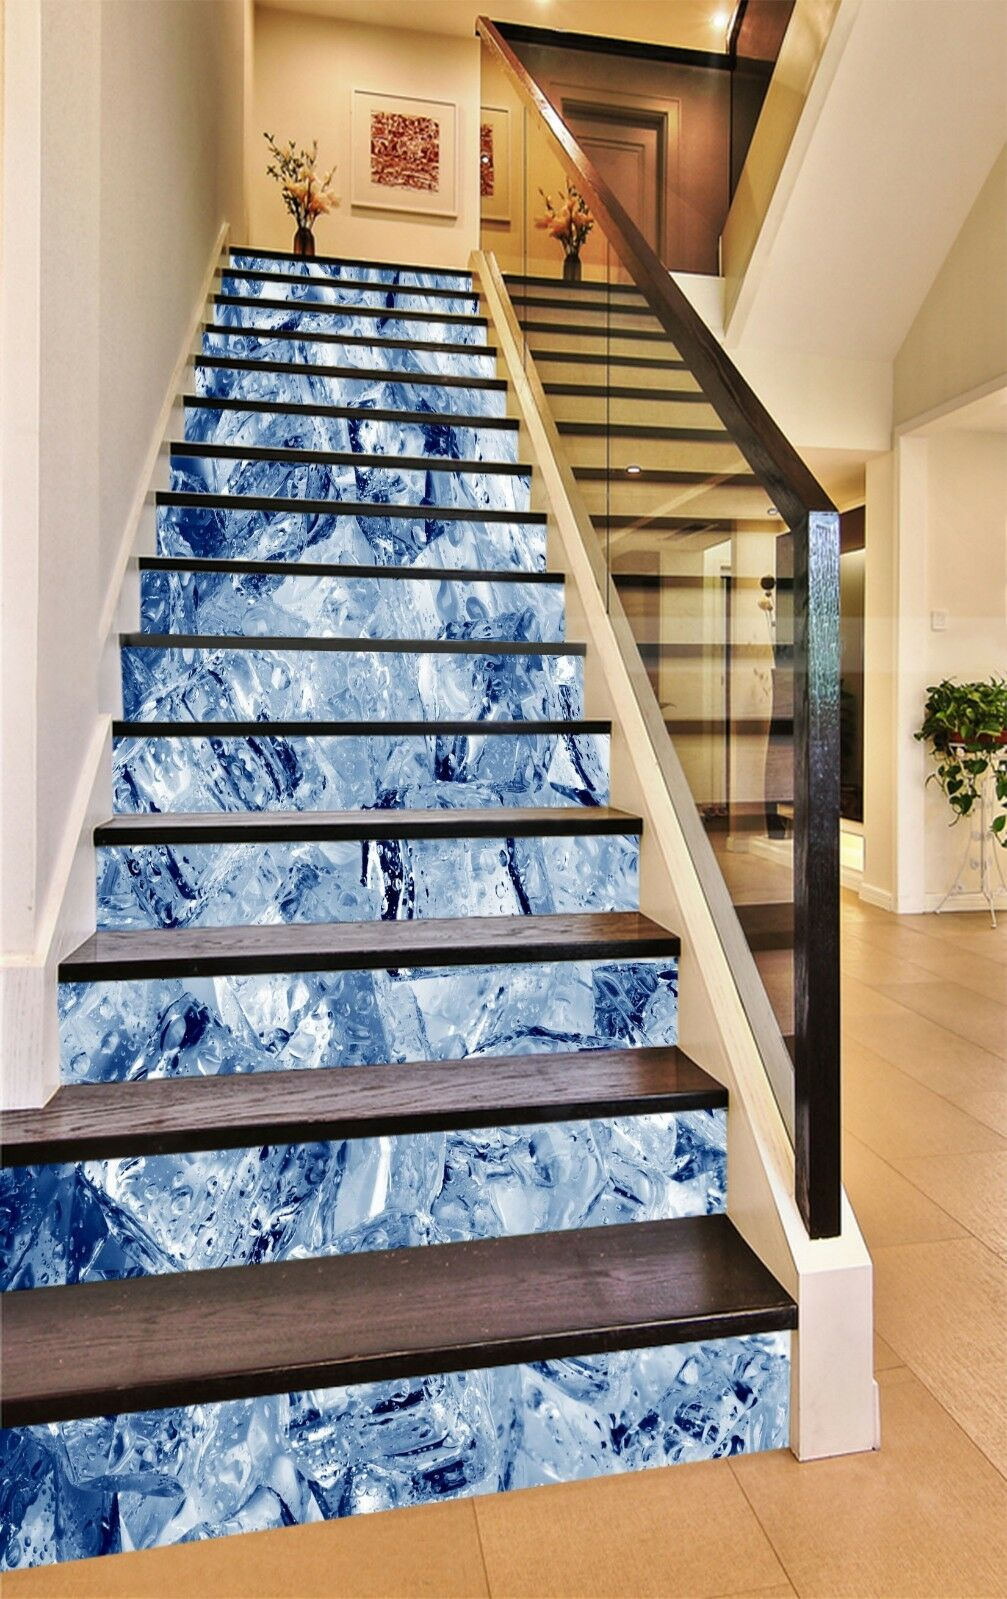 3D Ice Cubes 12 Stair Risers Decoration Photo Mural Vinyl Decal Wallpaper CA